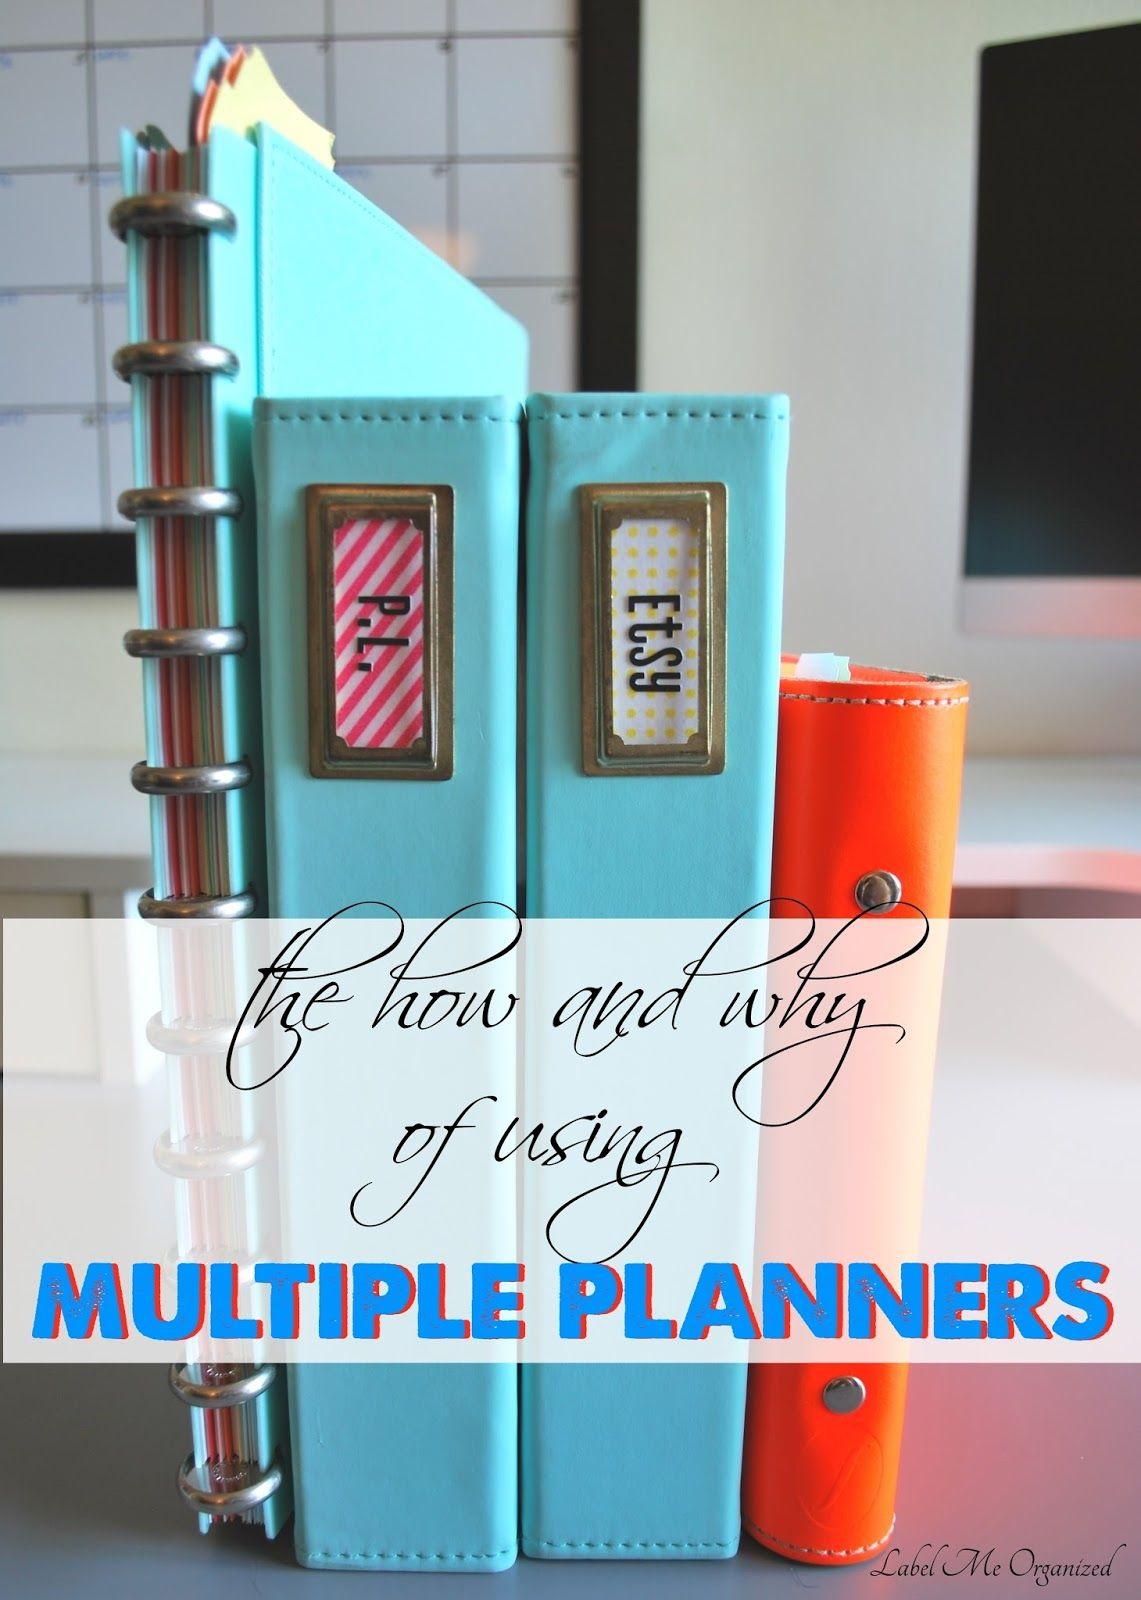 Gestion Hogar Why Use Multiple Planners Easy Explanation And Tutorial